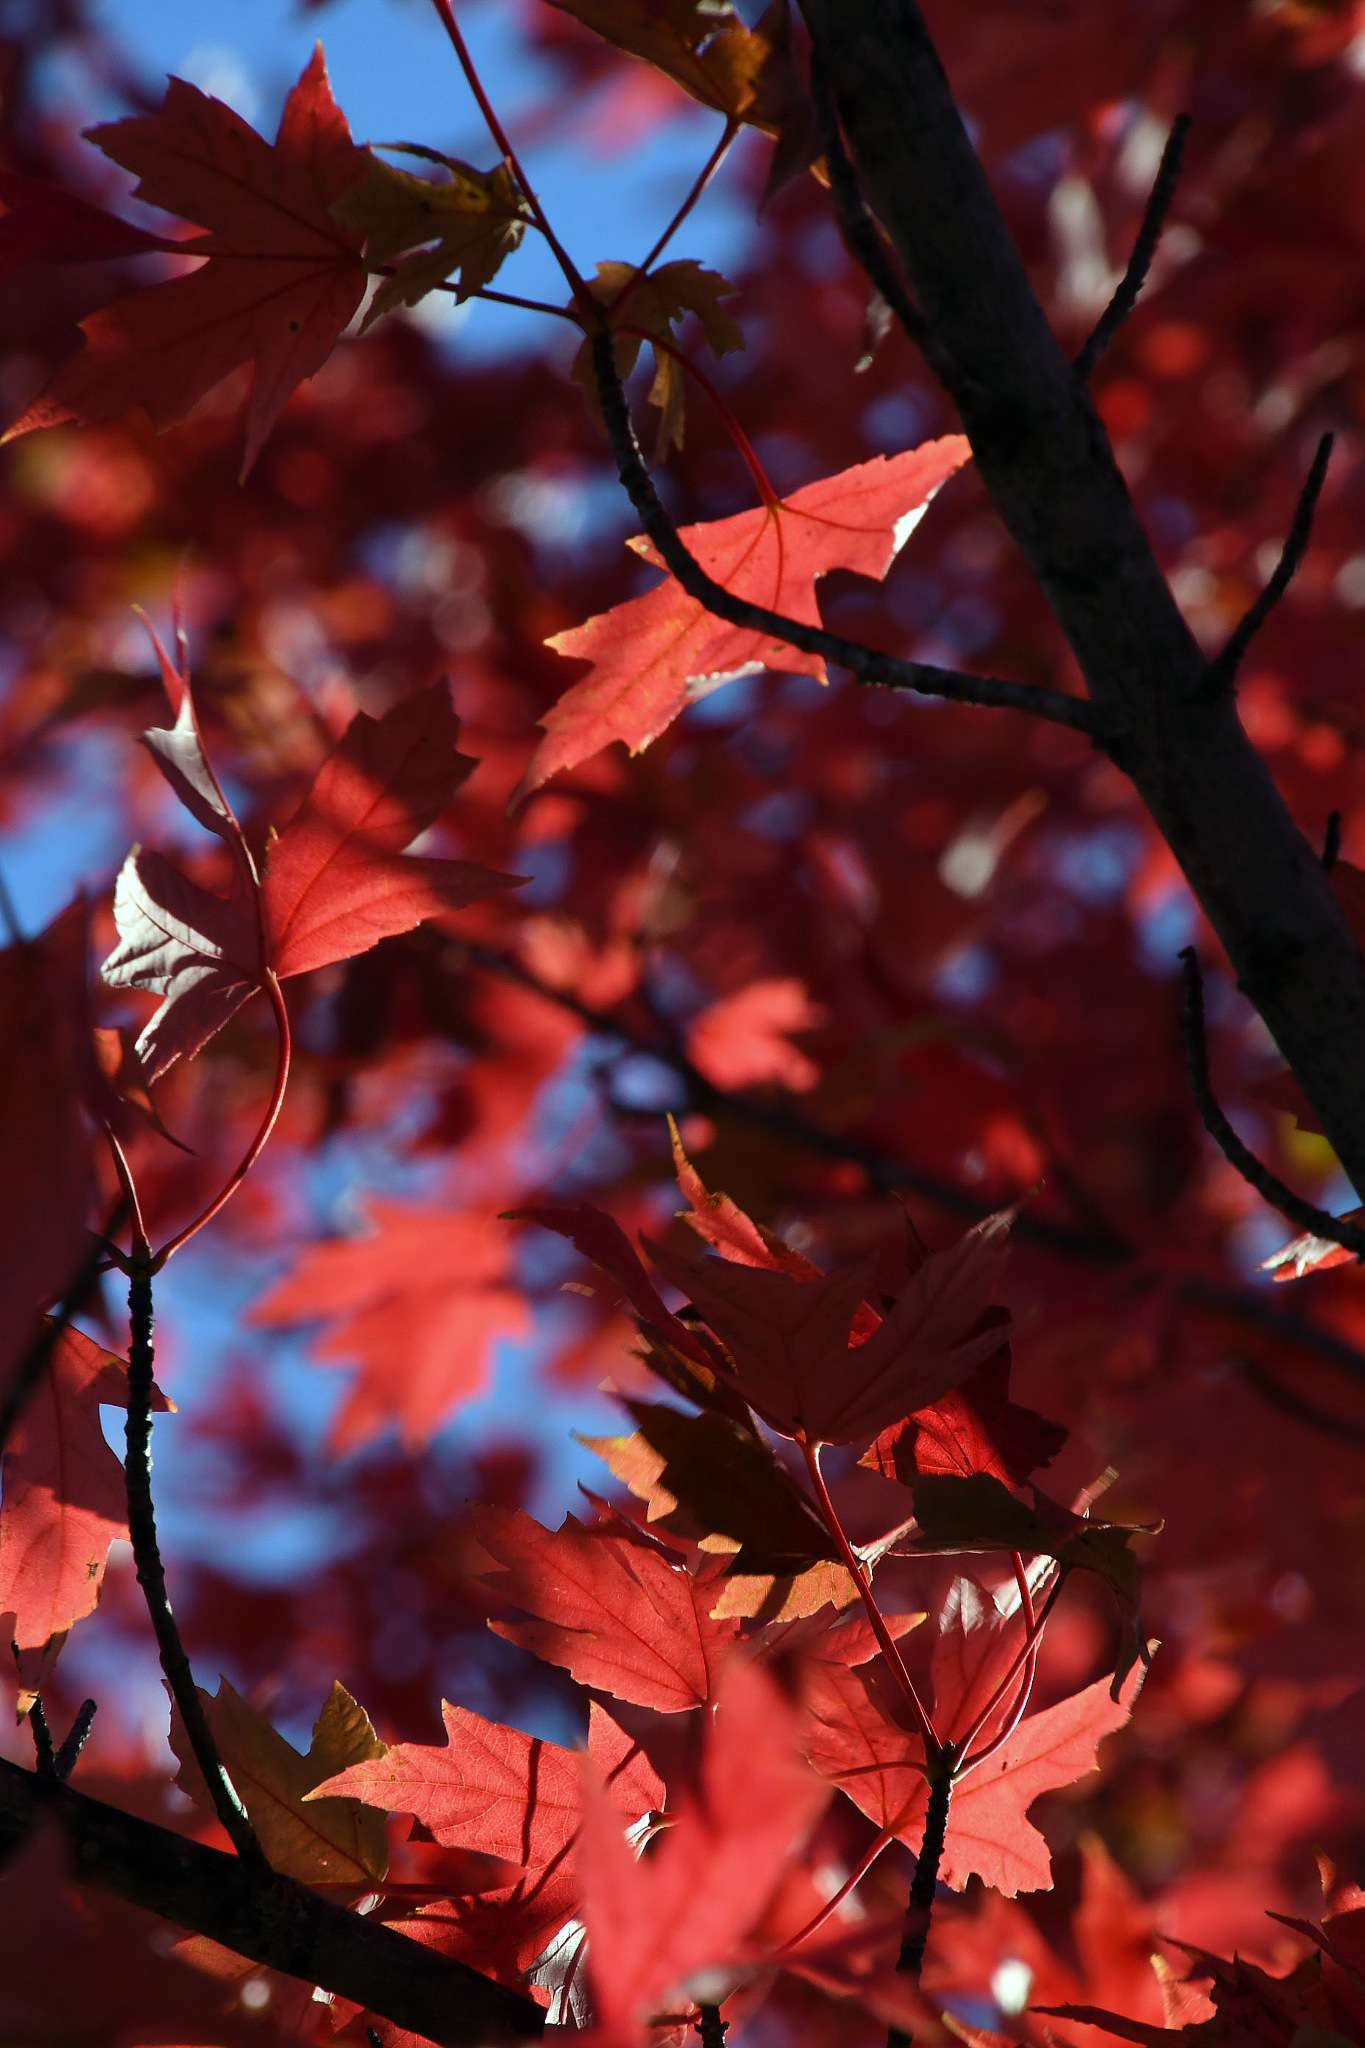 Fall leaves by Roger Sims